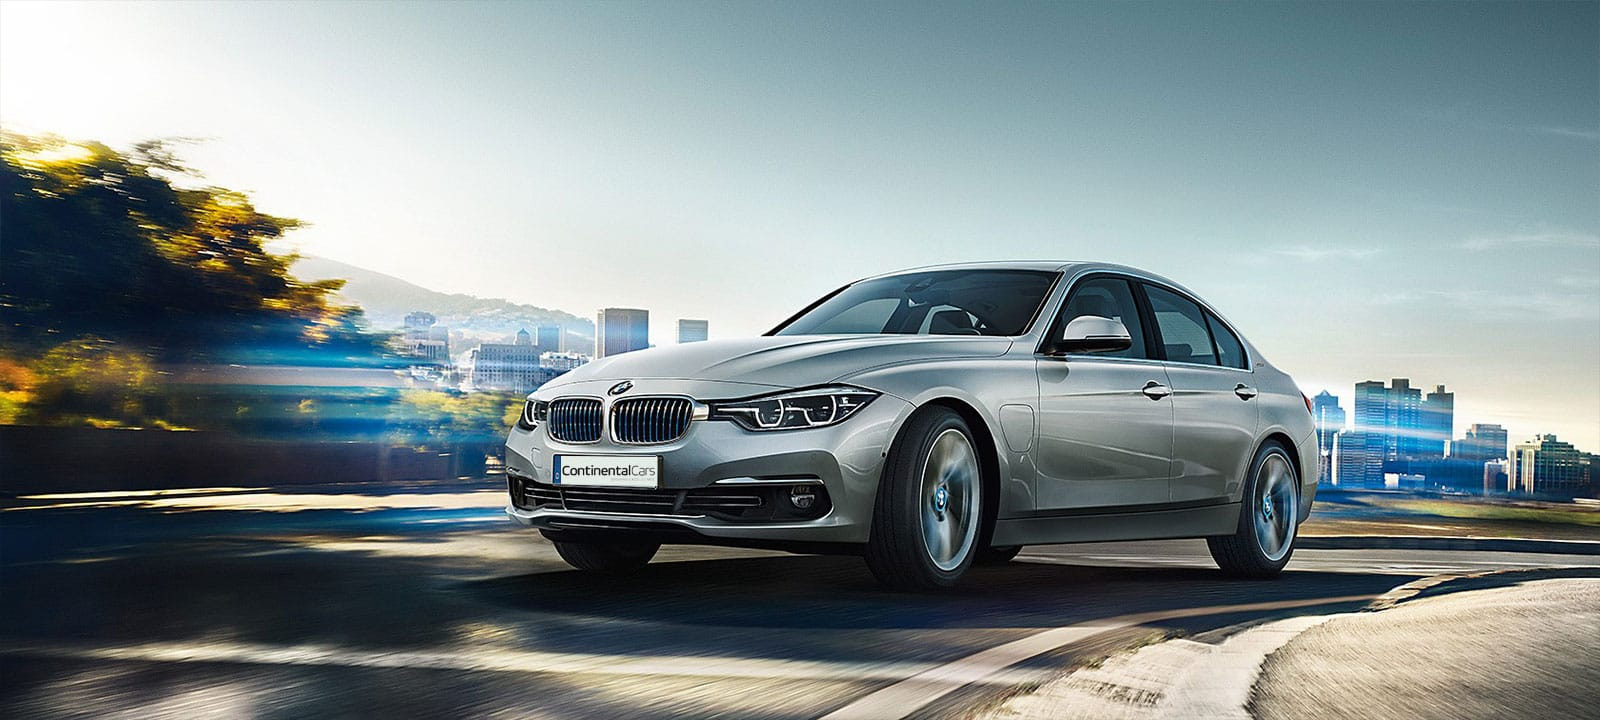 BMW 330e iPerformance Sedan Hero Image